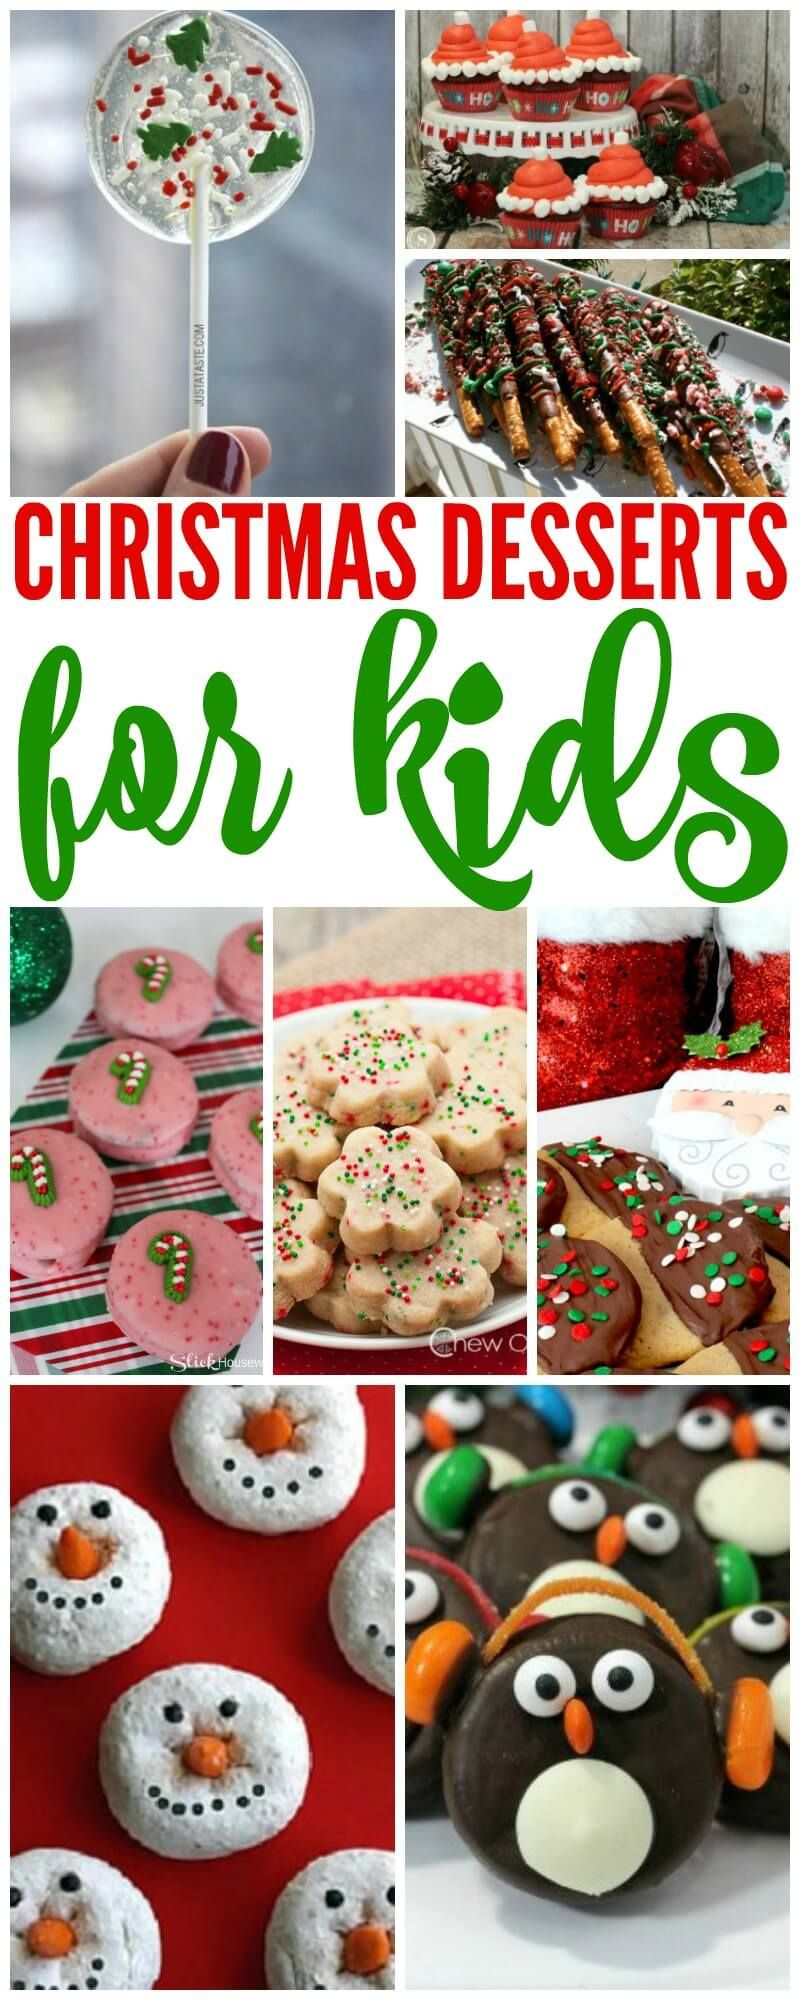 Here Are 20 Most Creative Christmas Dessert Ideas For Kids If You Re Looking For Some Si Christmas Desserts Kids Creative Christmas Dessert Christmas Desserts